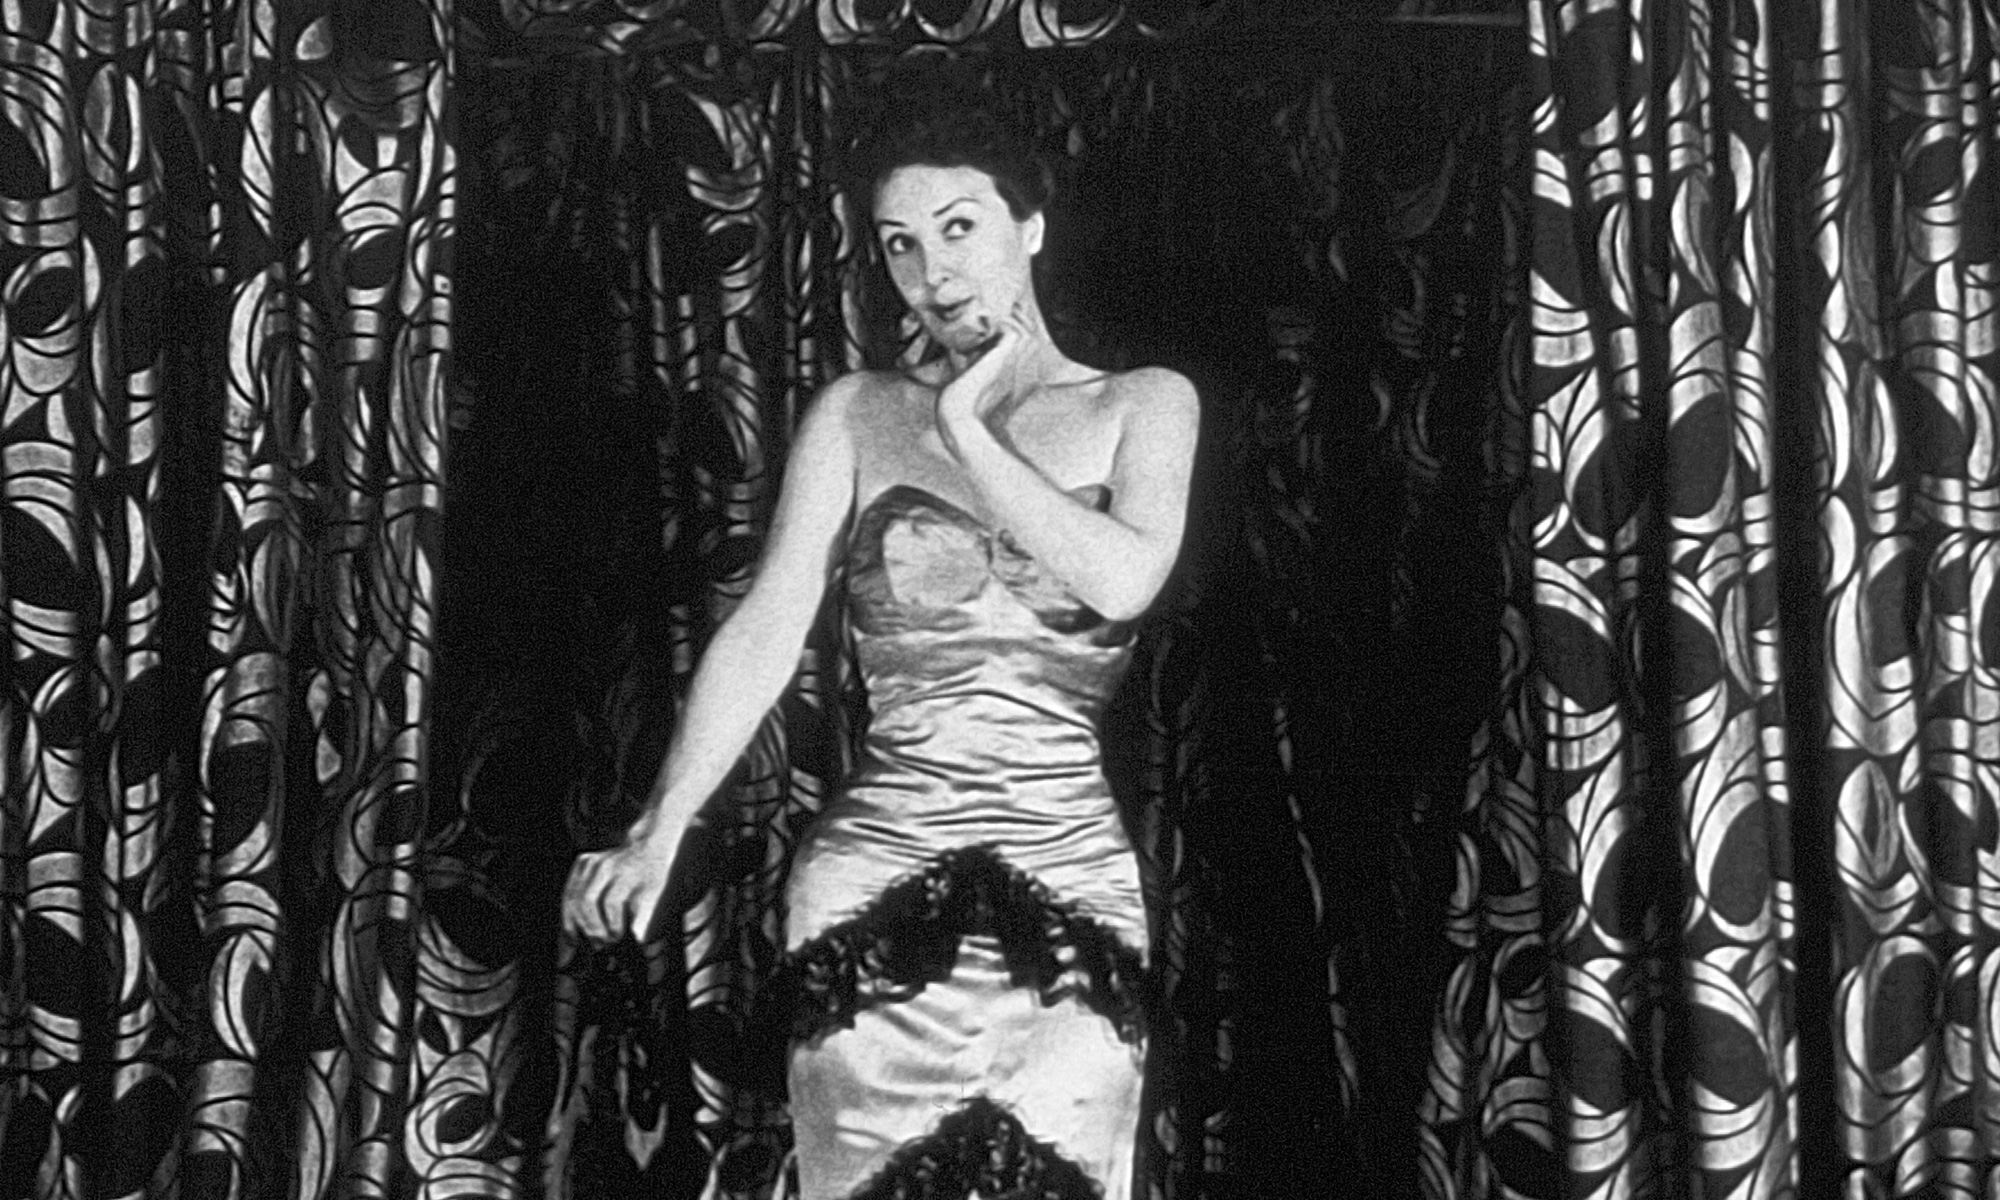 Burlesque Series: Gypsy Rose Lee